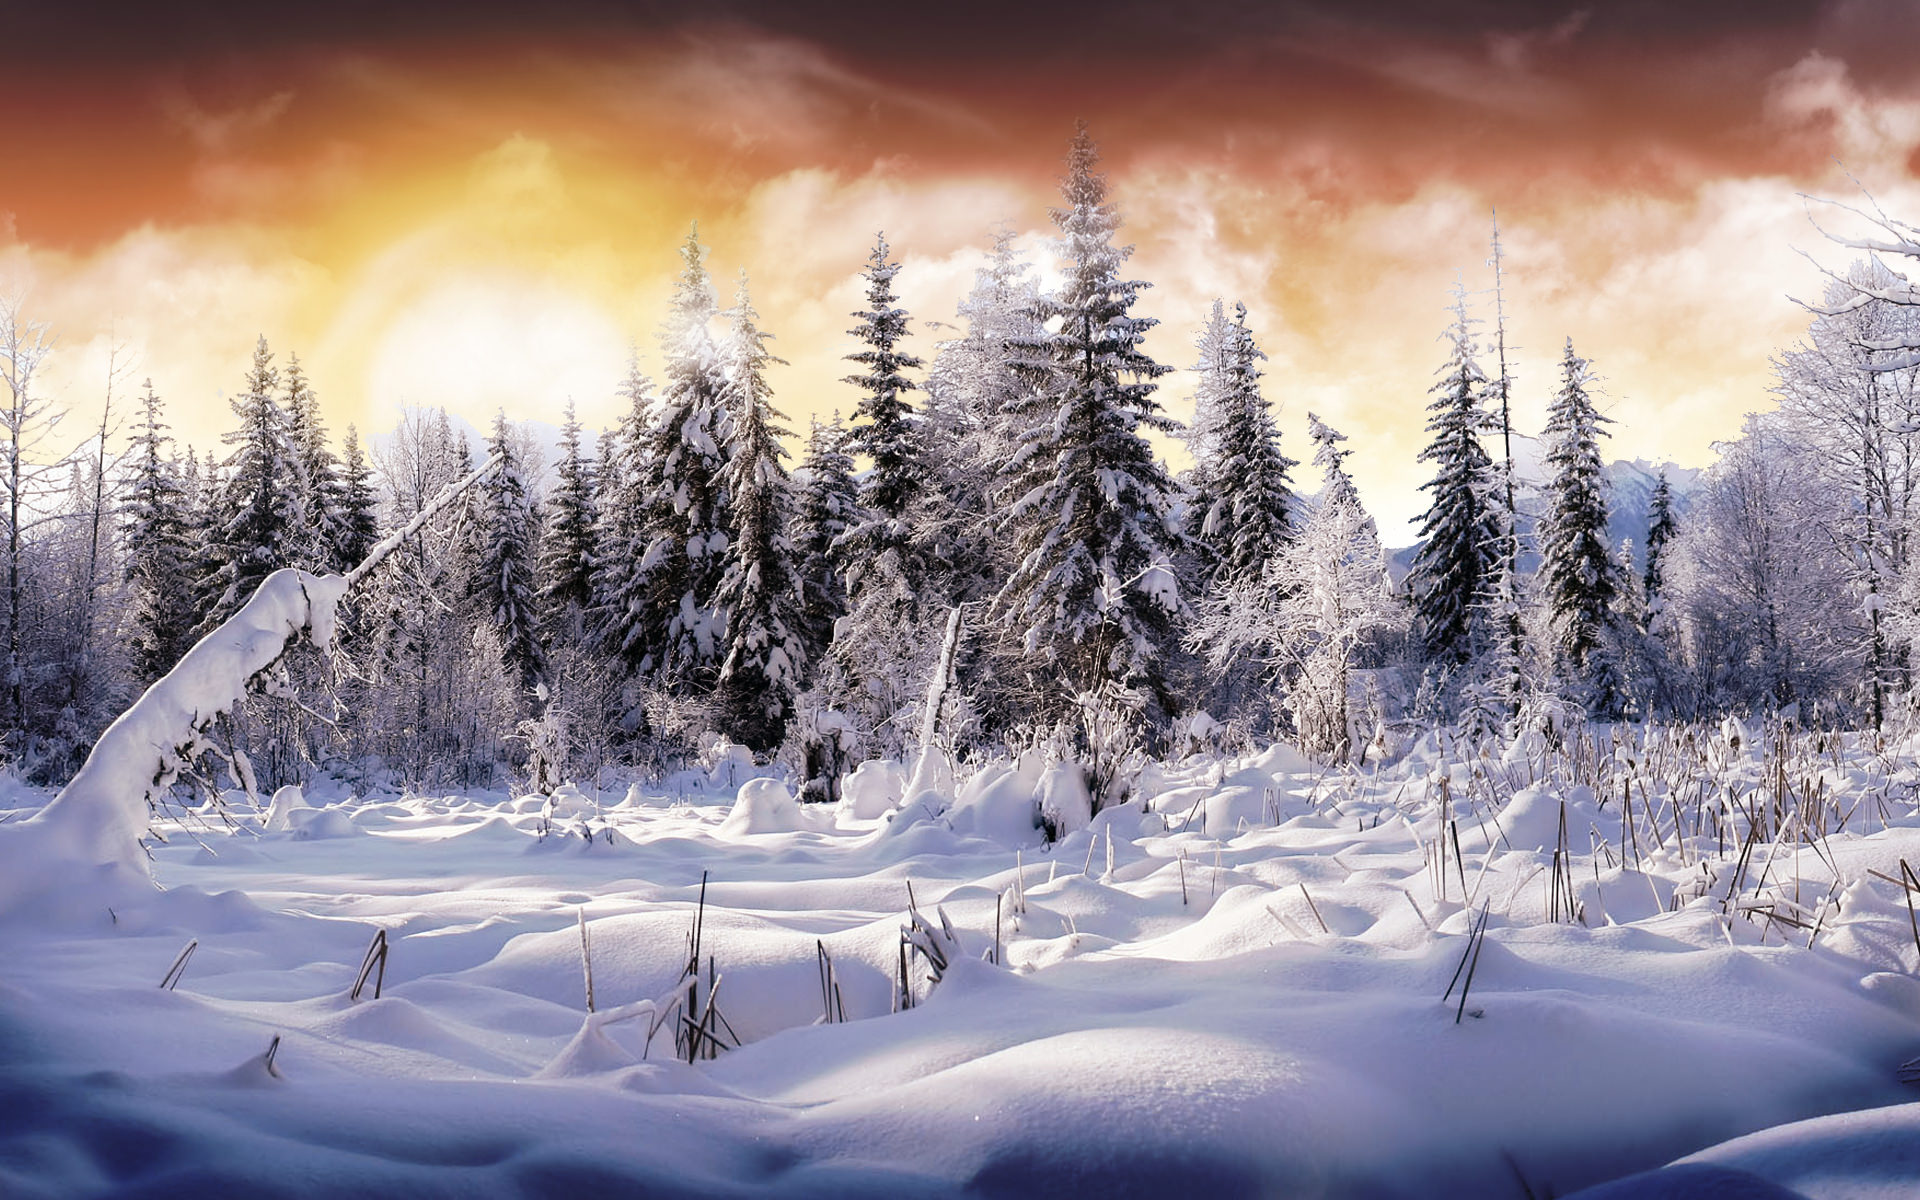 Free Download Of Christmas Wallpaper With Snow Falling 21 Winter Wallpapers Backgrounds Images Freecreatives